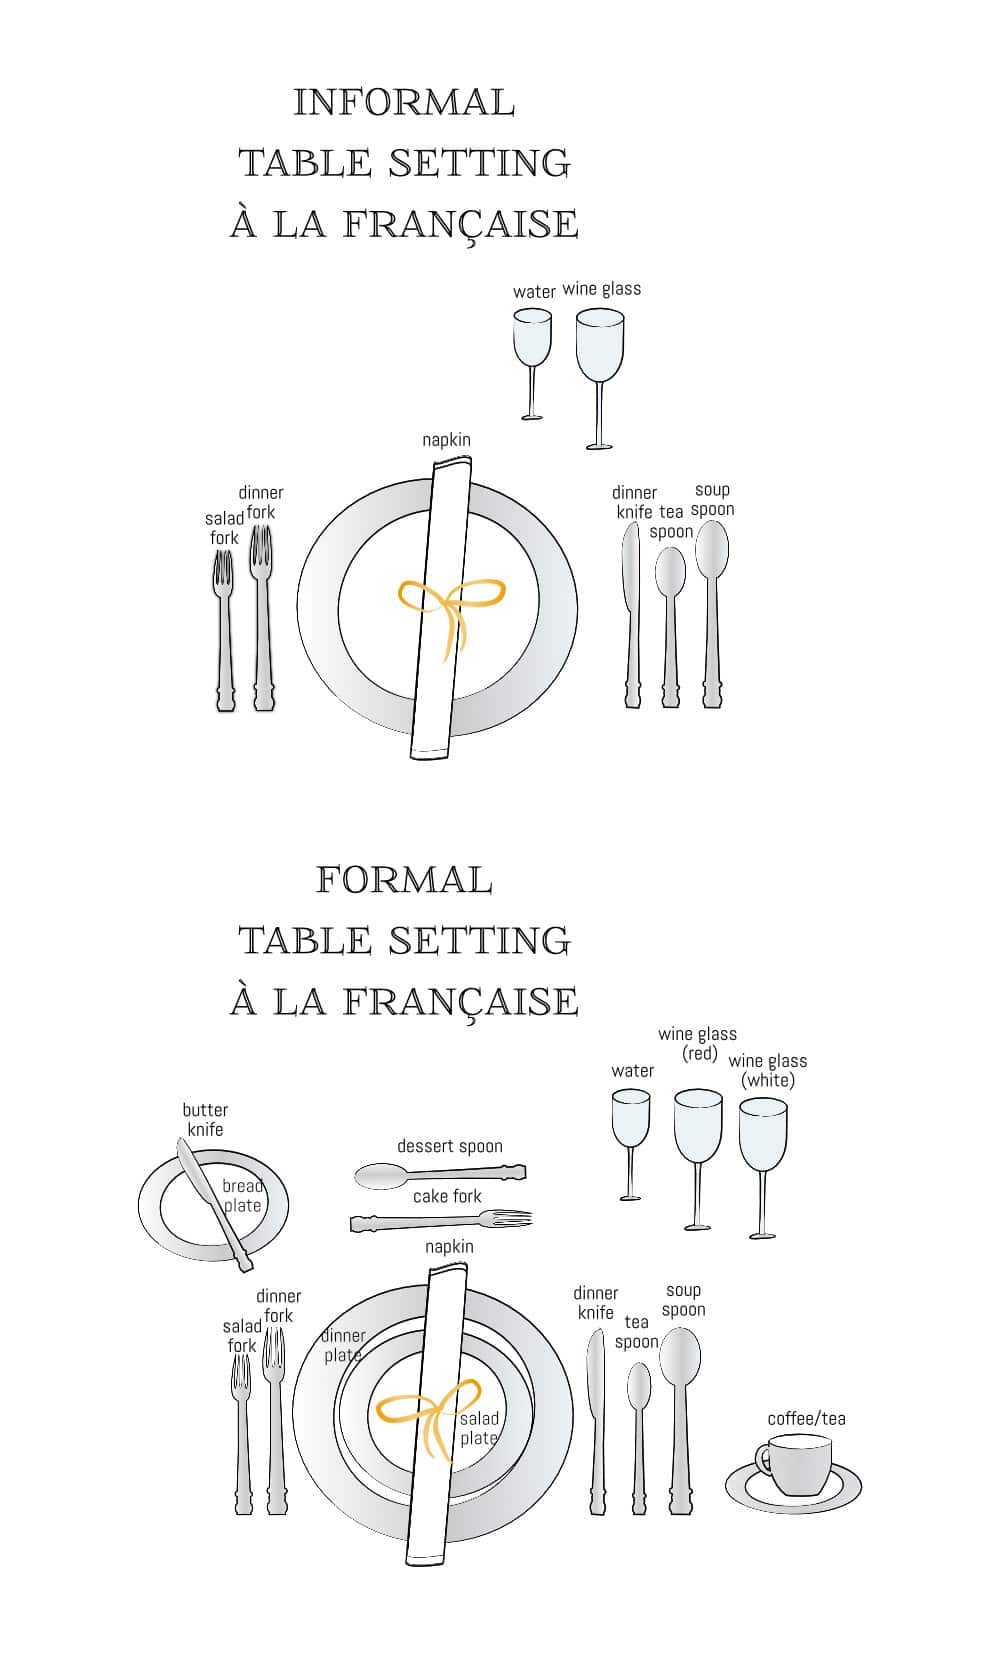 Formal and informal table setting in France